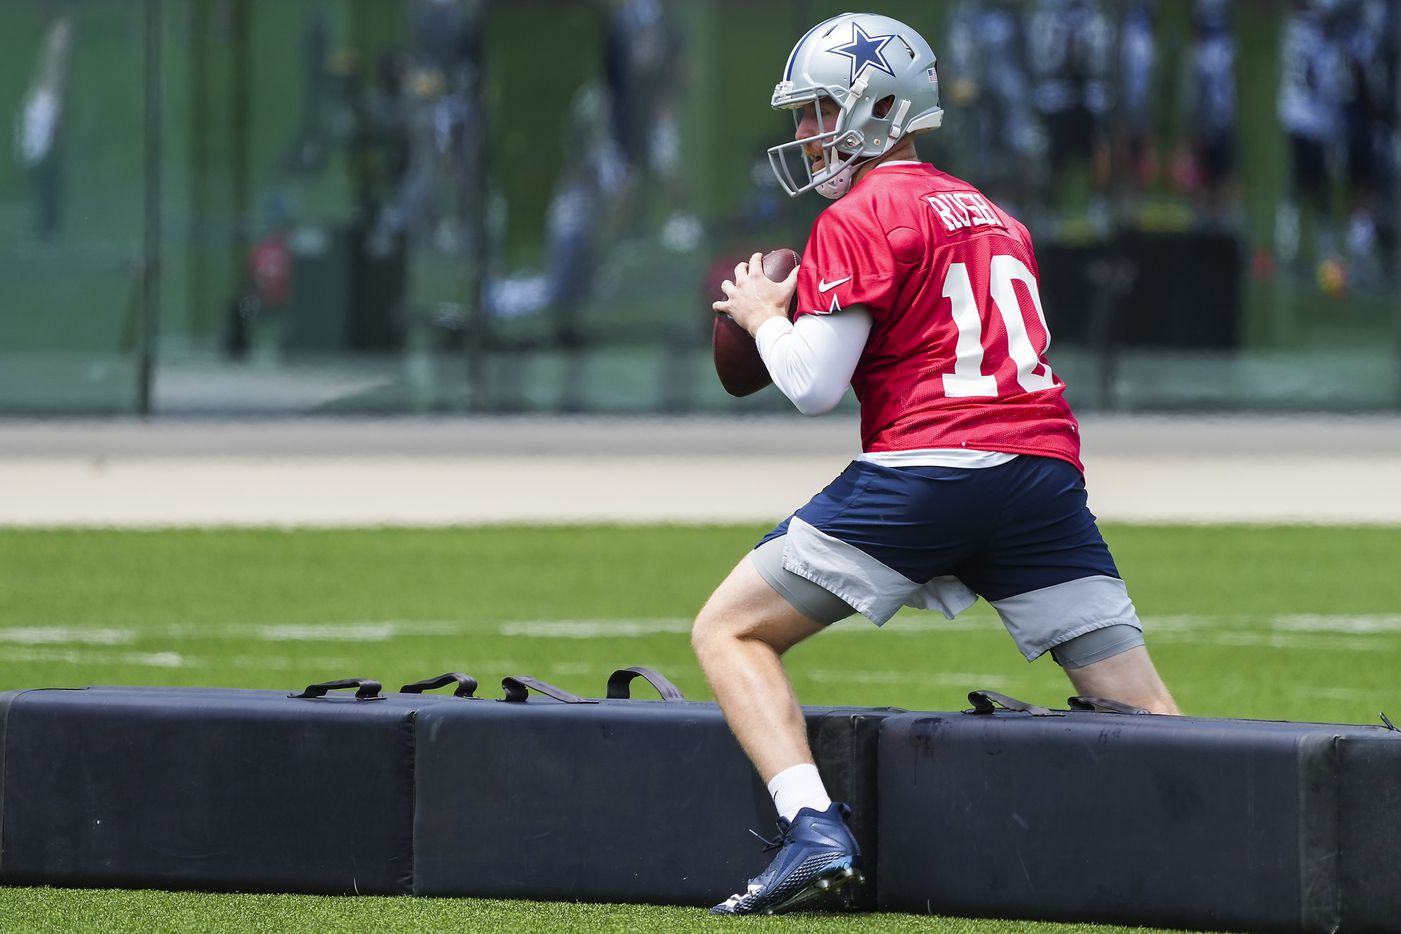 Dallas Cowboys quarterback Cooper Rush runs a drill during a minicamp practice at The Star on Tuesday, June 8, 2021, in Frisco. (Smiley N. Pool/The Dallas Morning News)